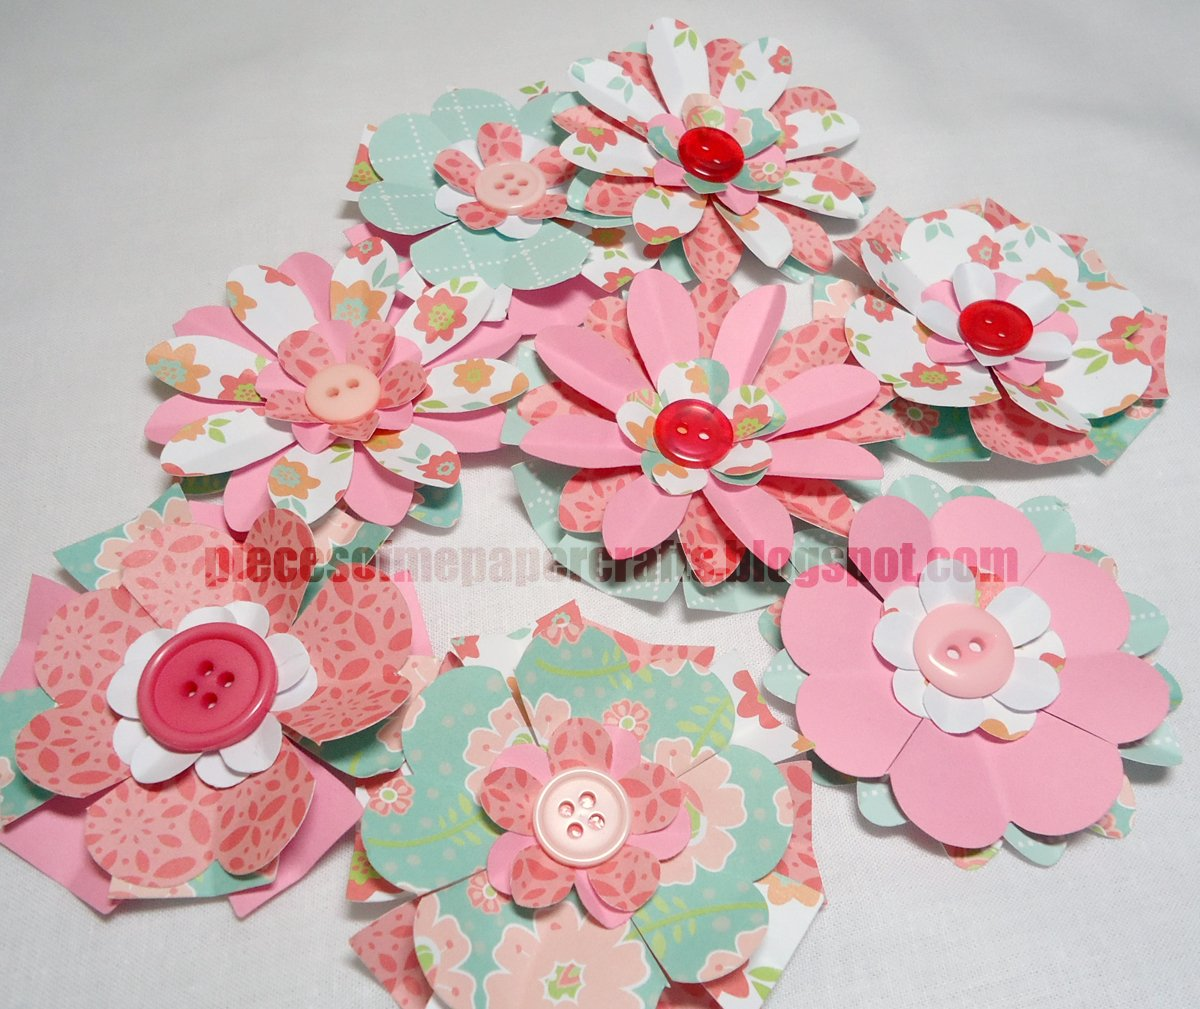 Pieces of me scrapbooking paper crafts paper flowers paper flowers mightylinksfo